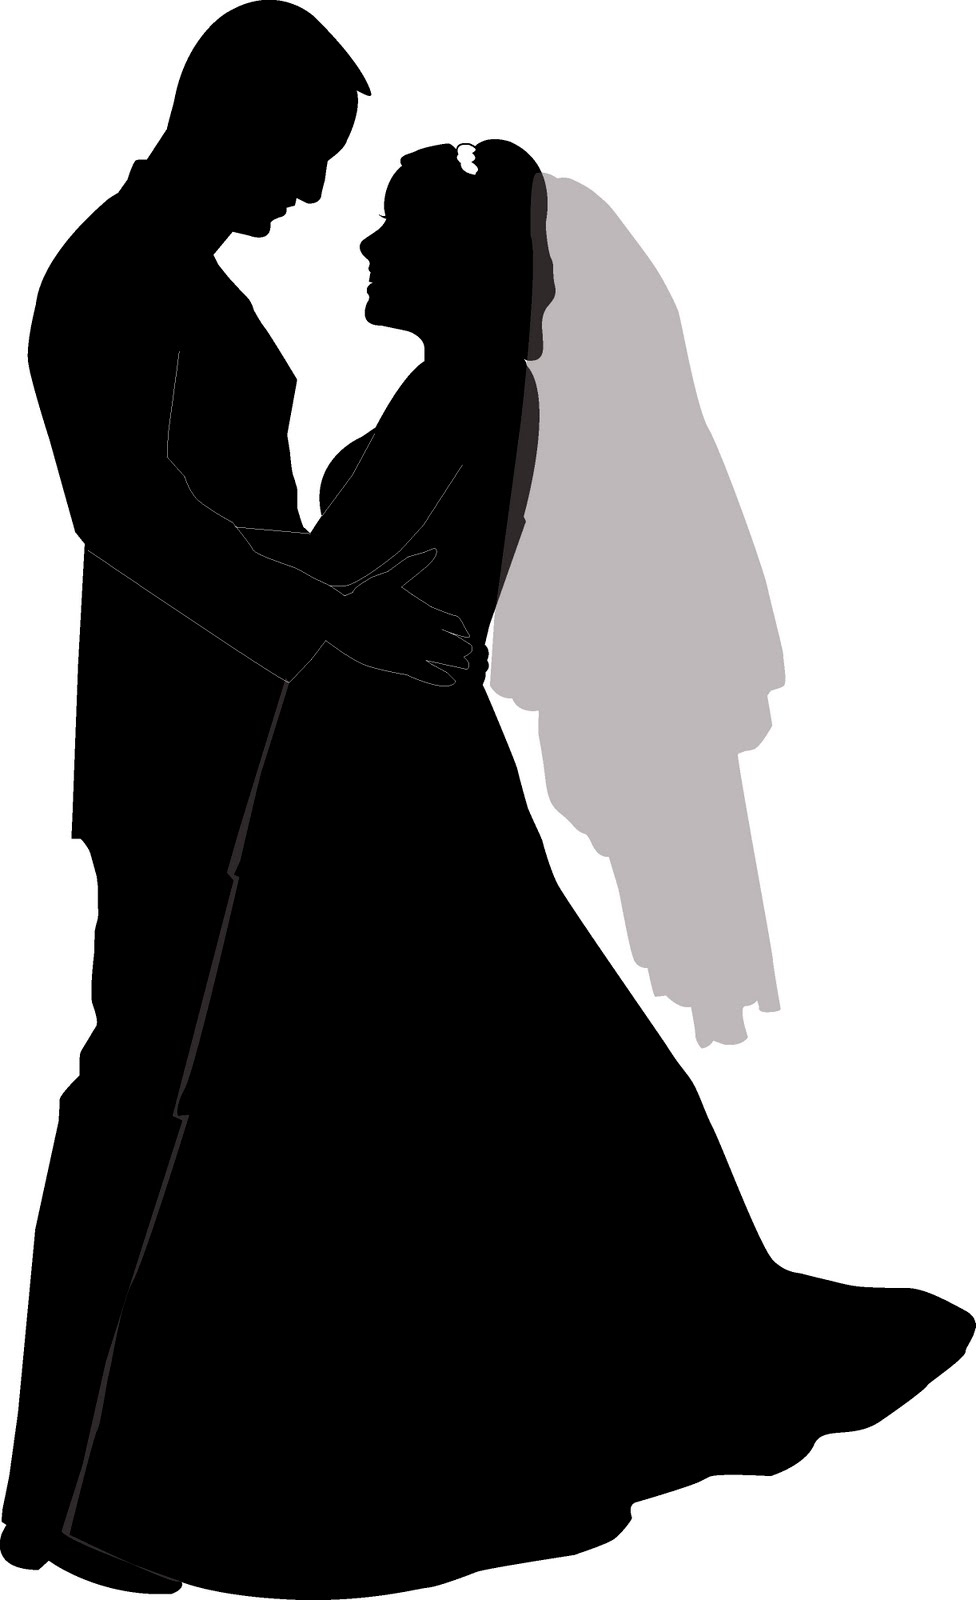 Two people kissing clipart wedding clip transparent stock Two people kissing clipart wedding - ClipartFest clip transparent stock